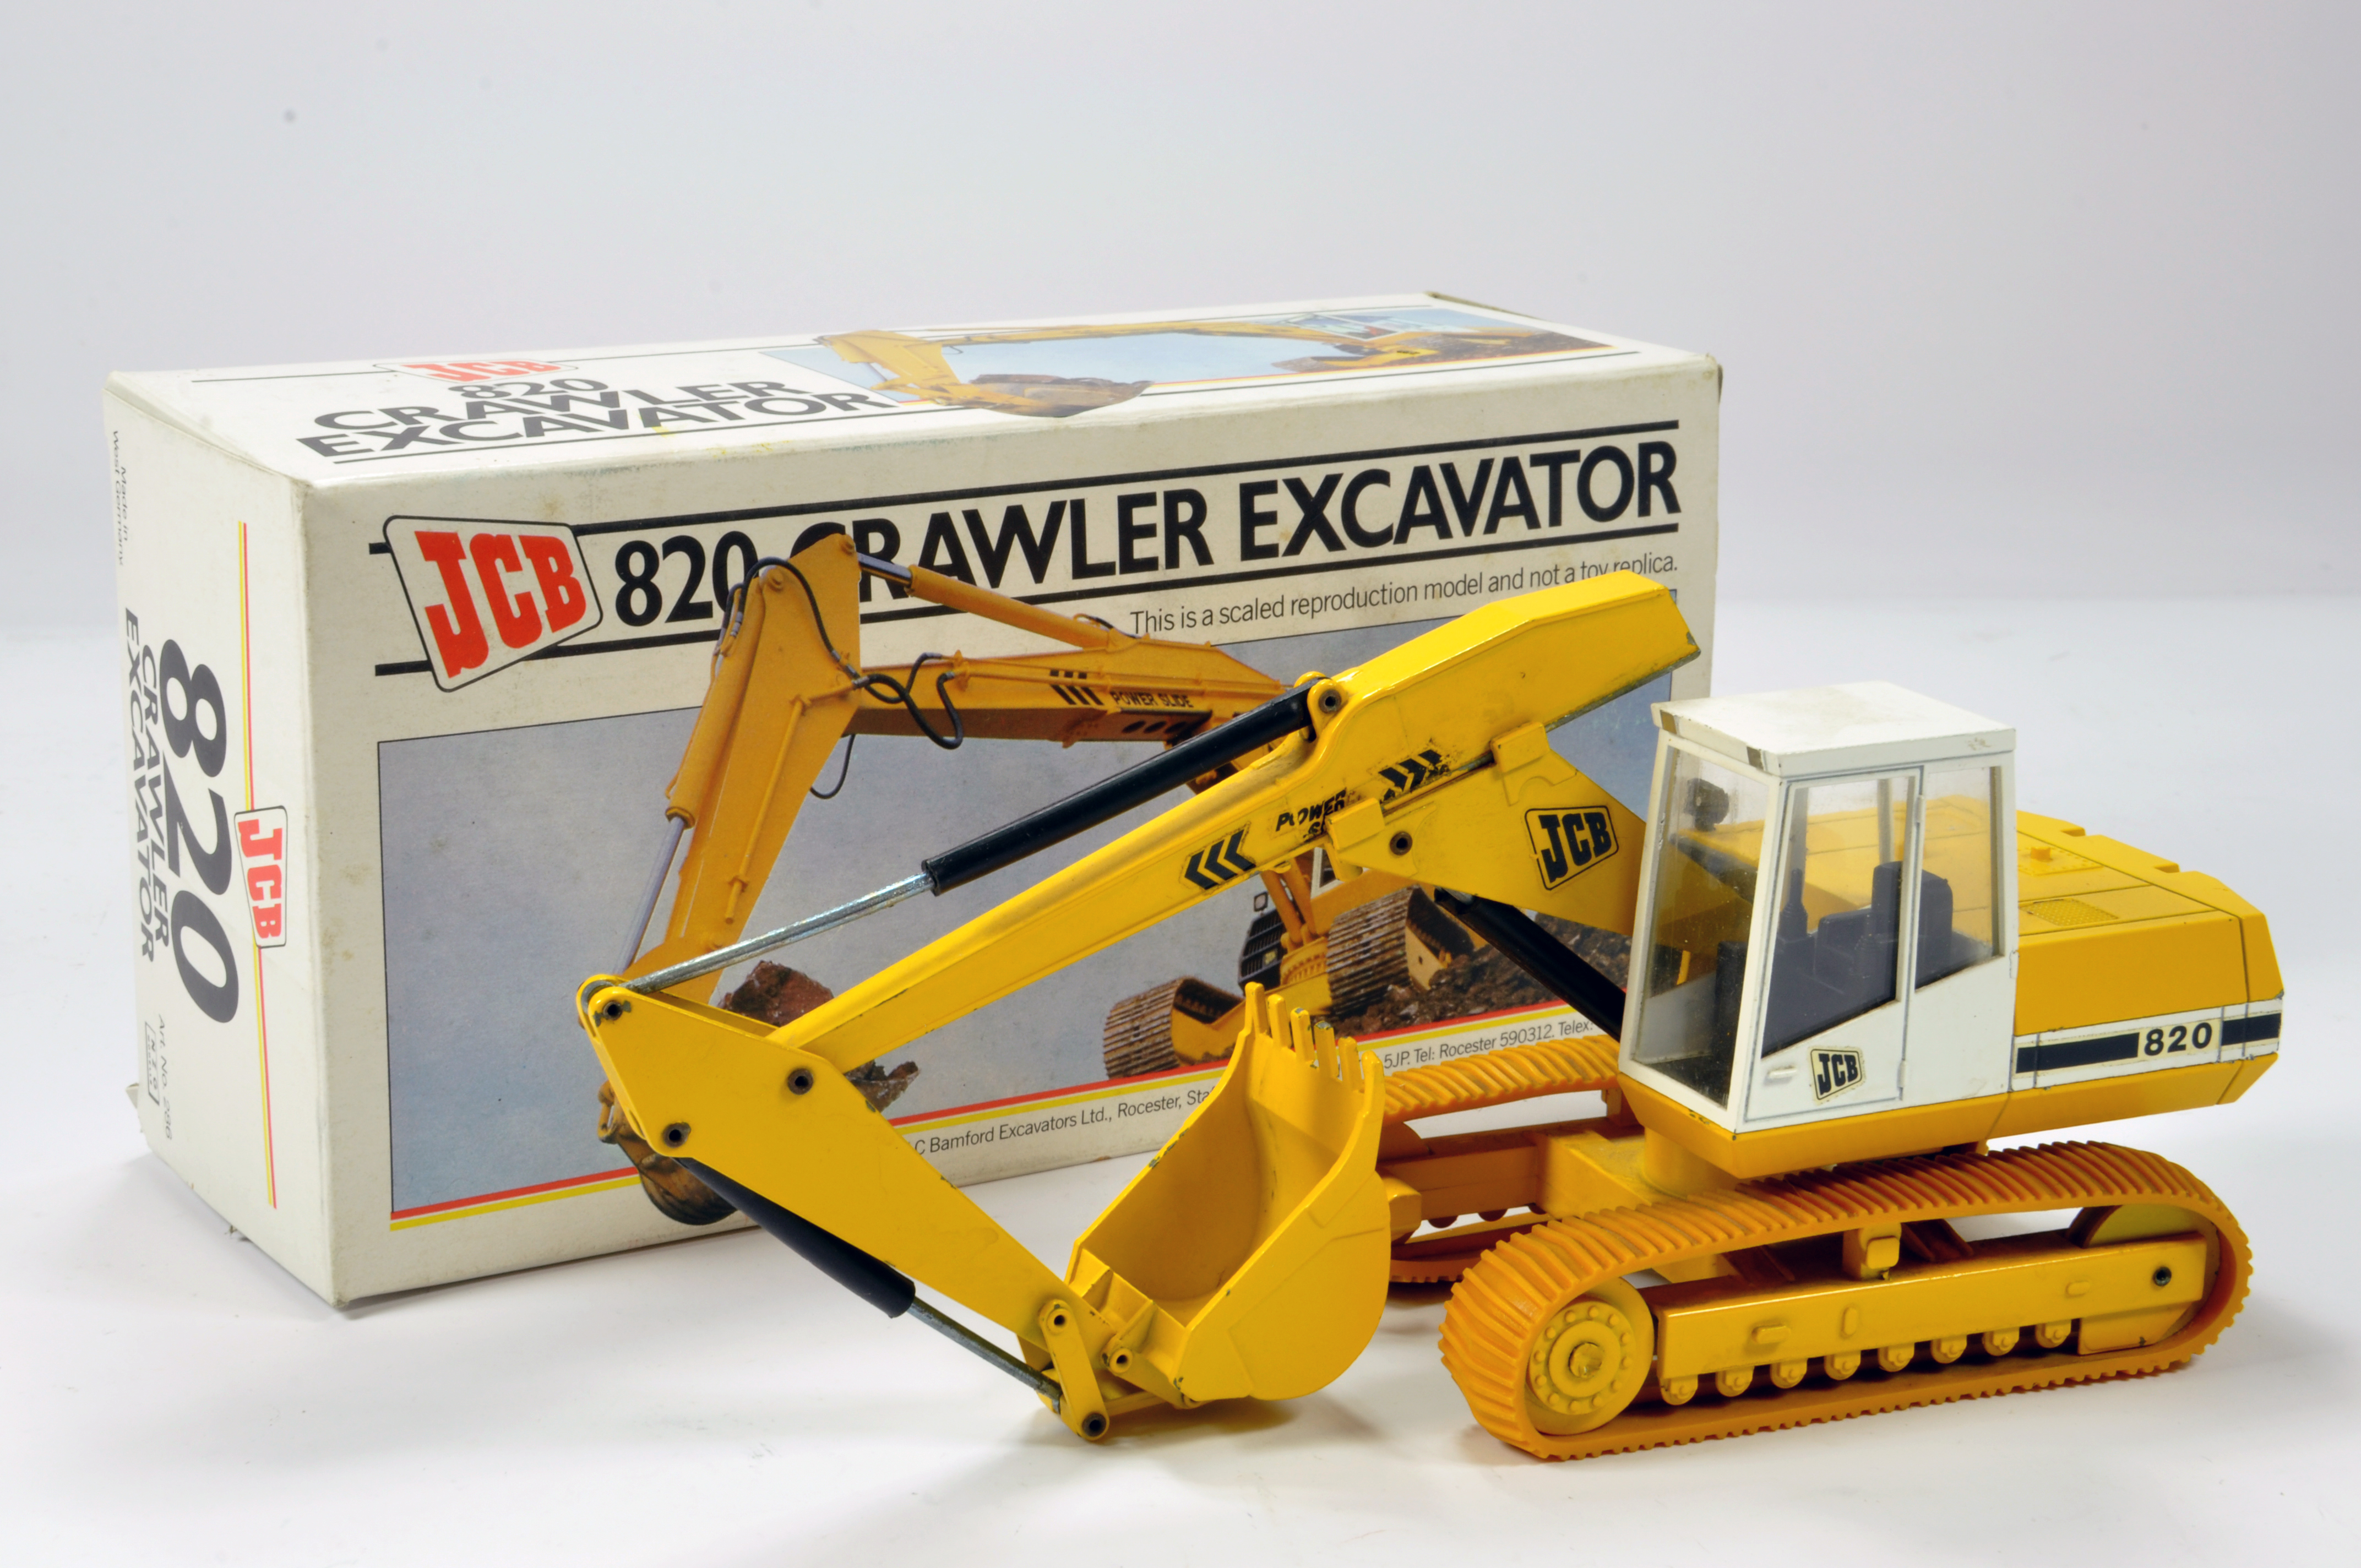 Lot 269 - NZG 1/35 Construction Diecast Issue comprising No. 286 JCB 820 Crawler Excavator in light yellow.